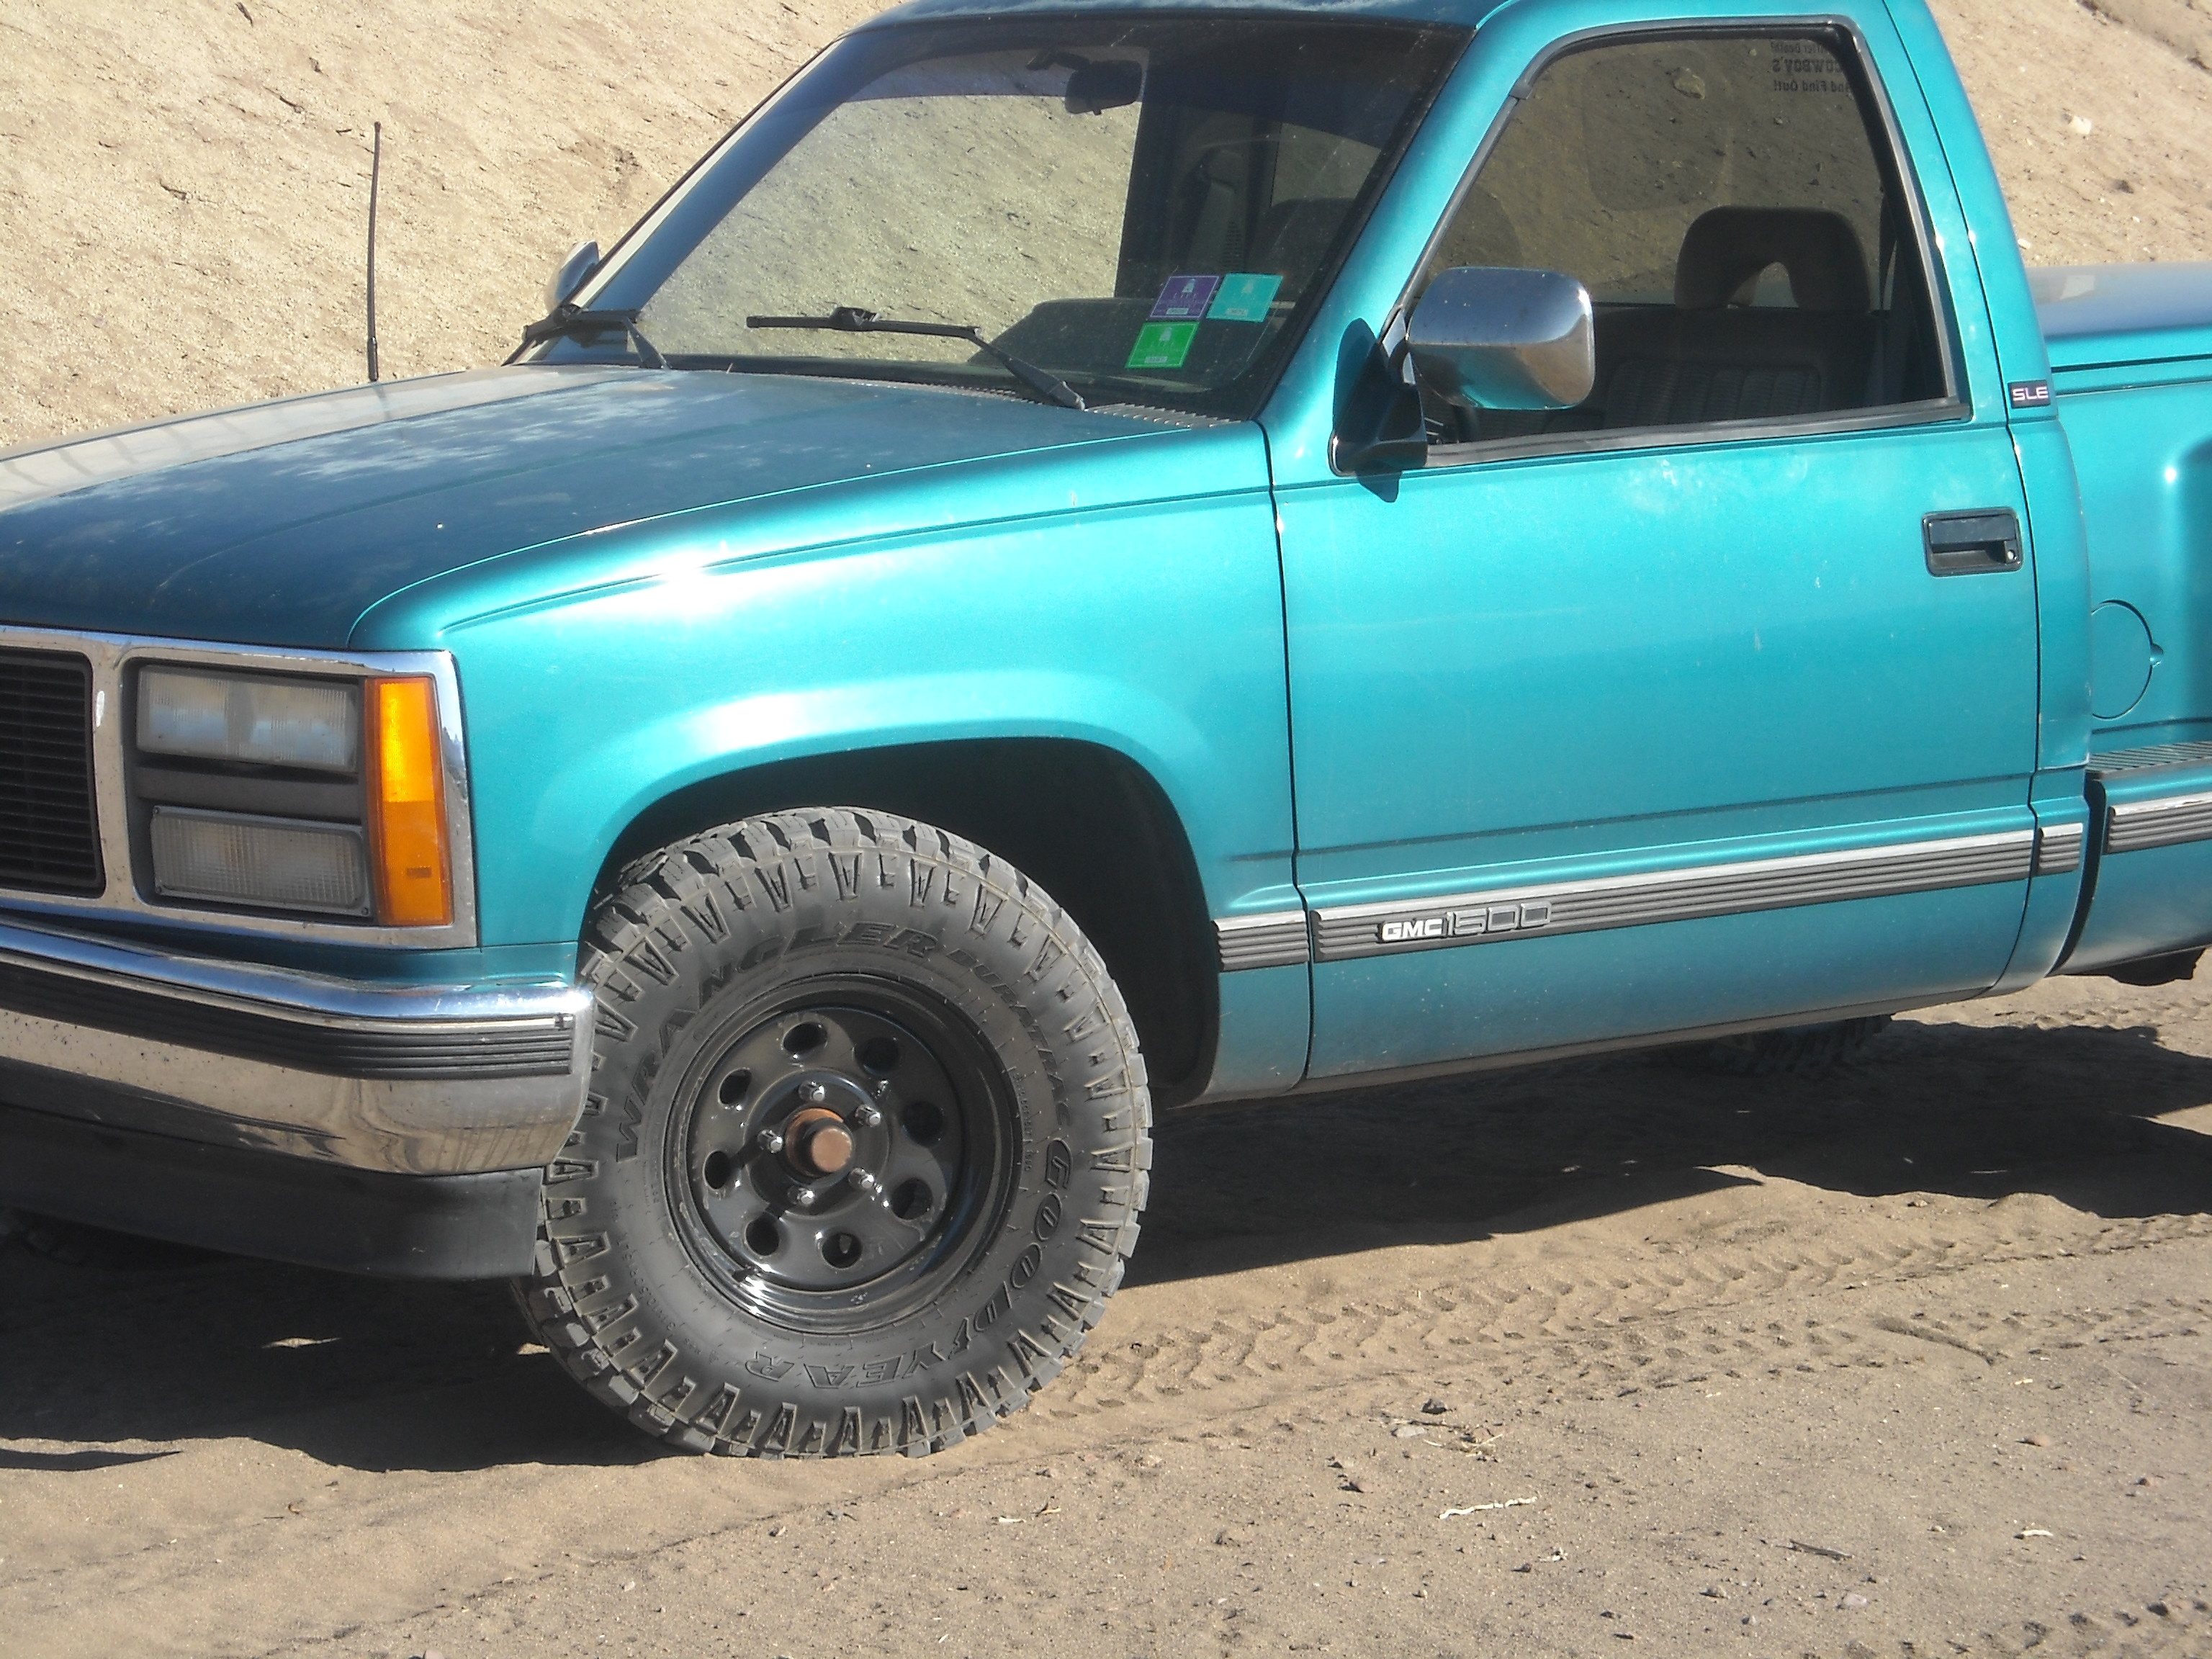 countryboy1919's 1993 GMC 1500 Regular Cab